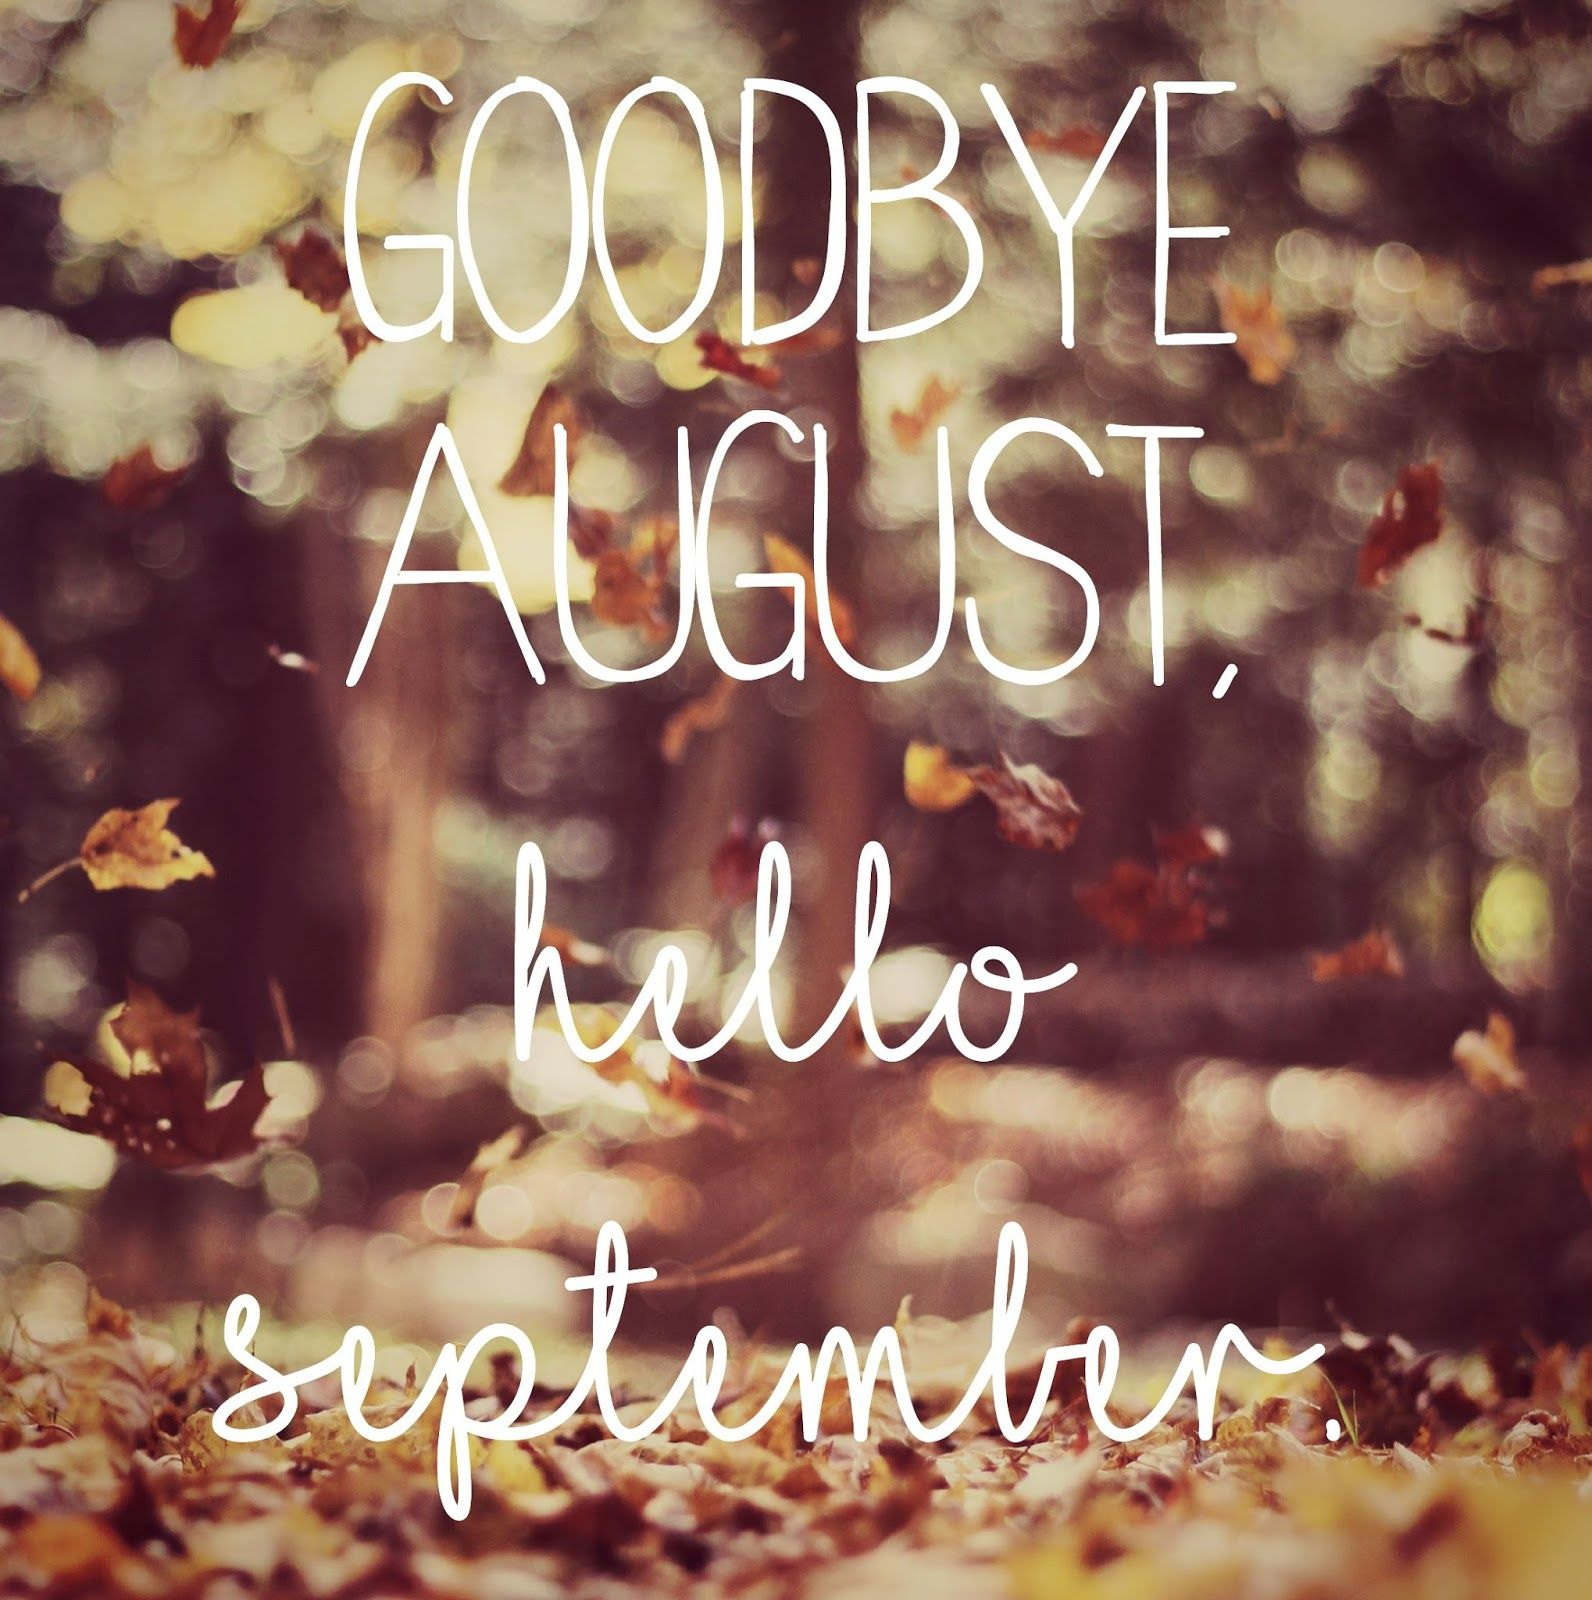 Goodbye August Hello September Quotes For Facebook